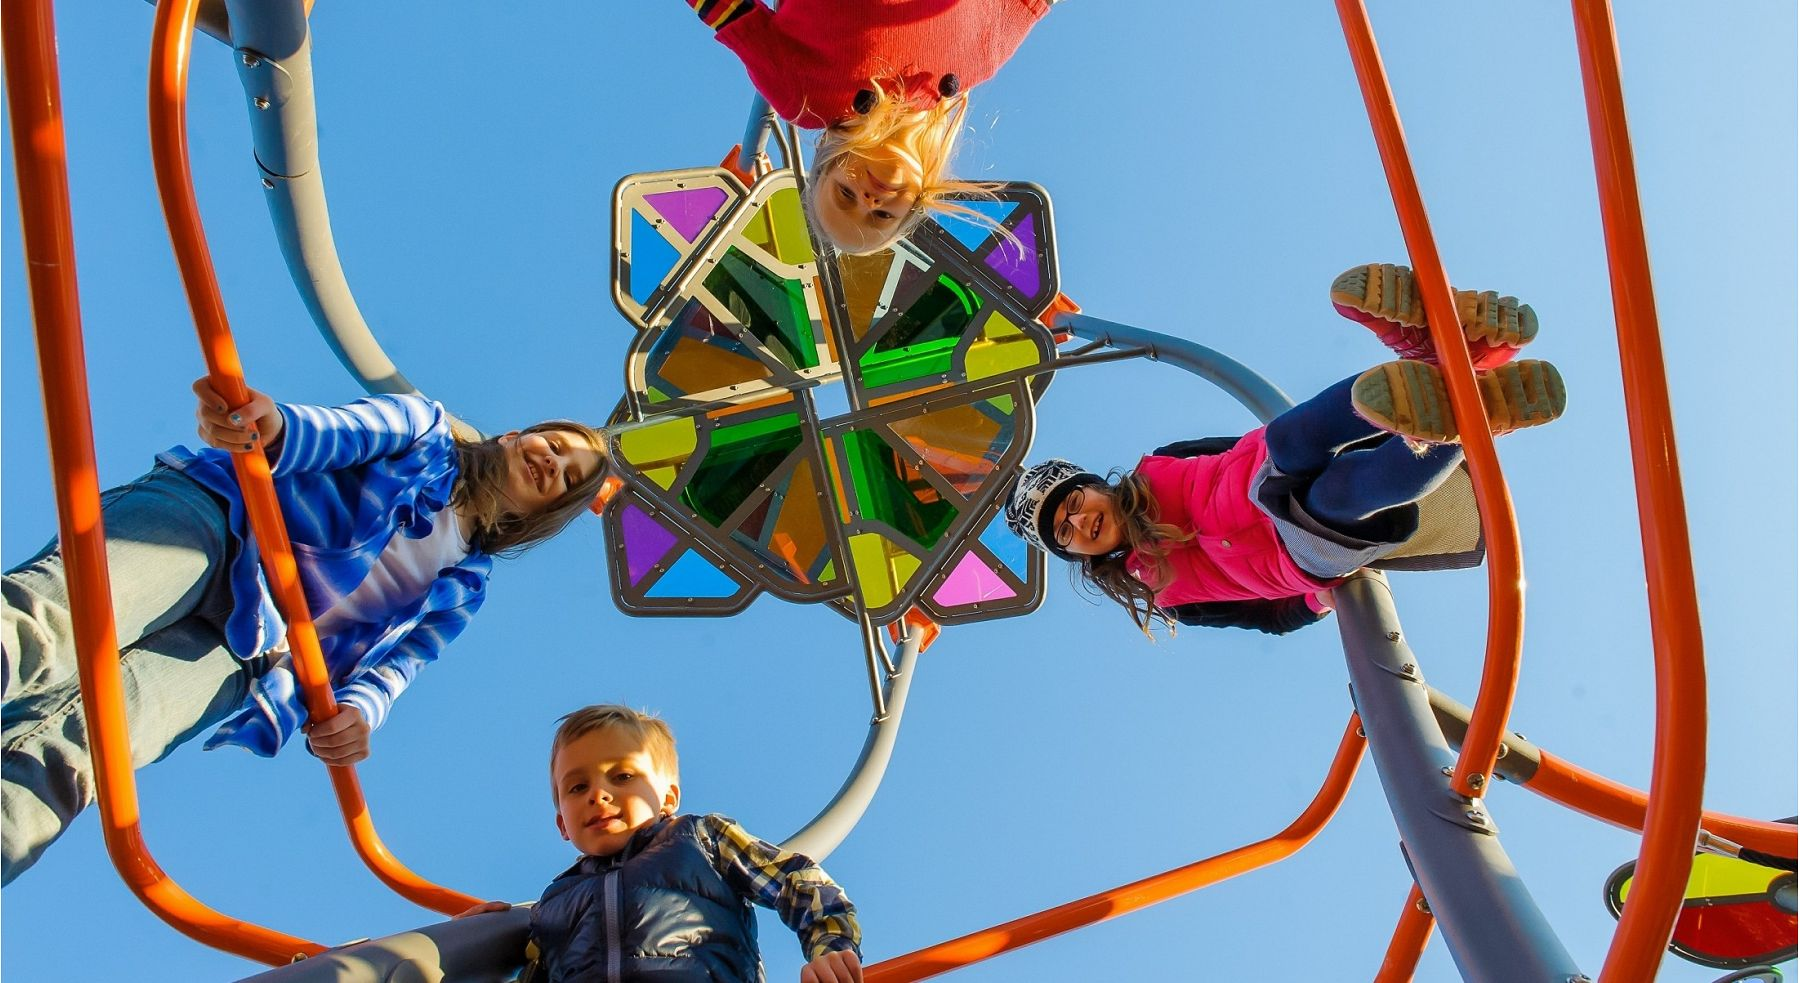 Kids on Helix Tower